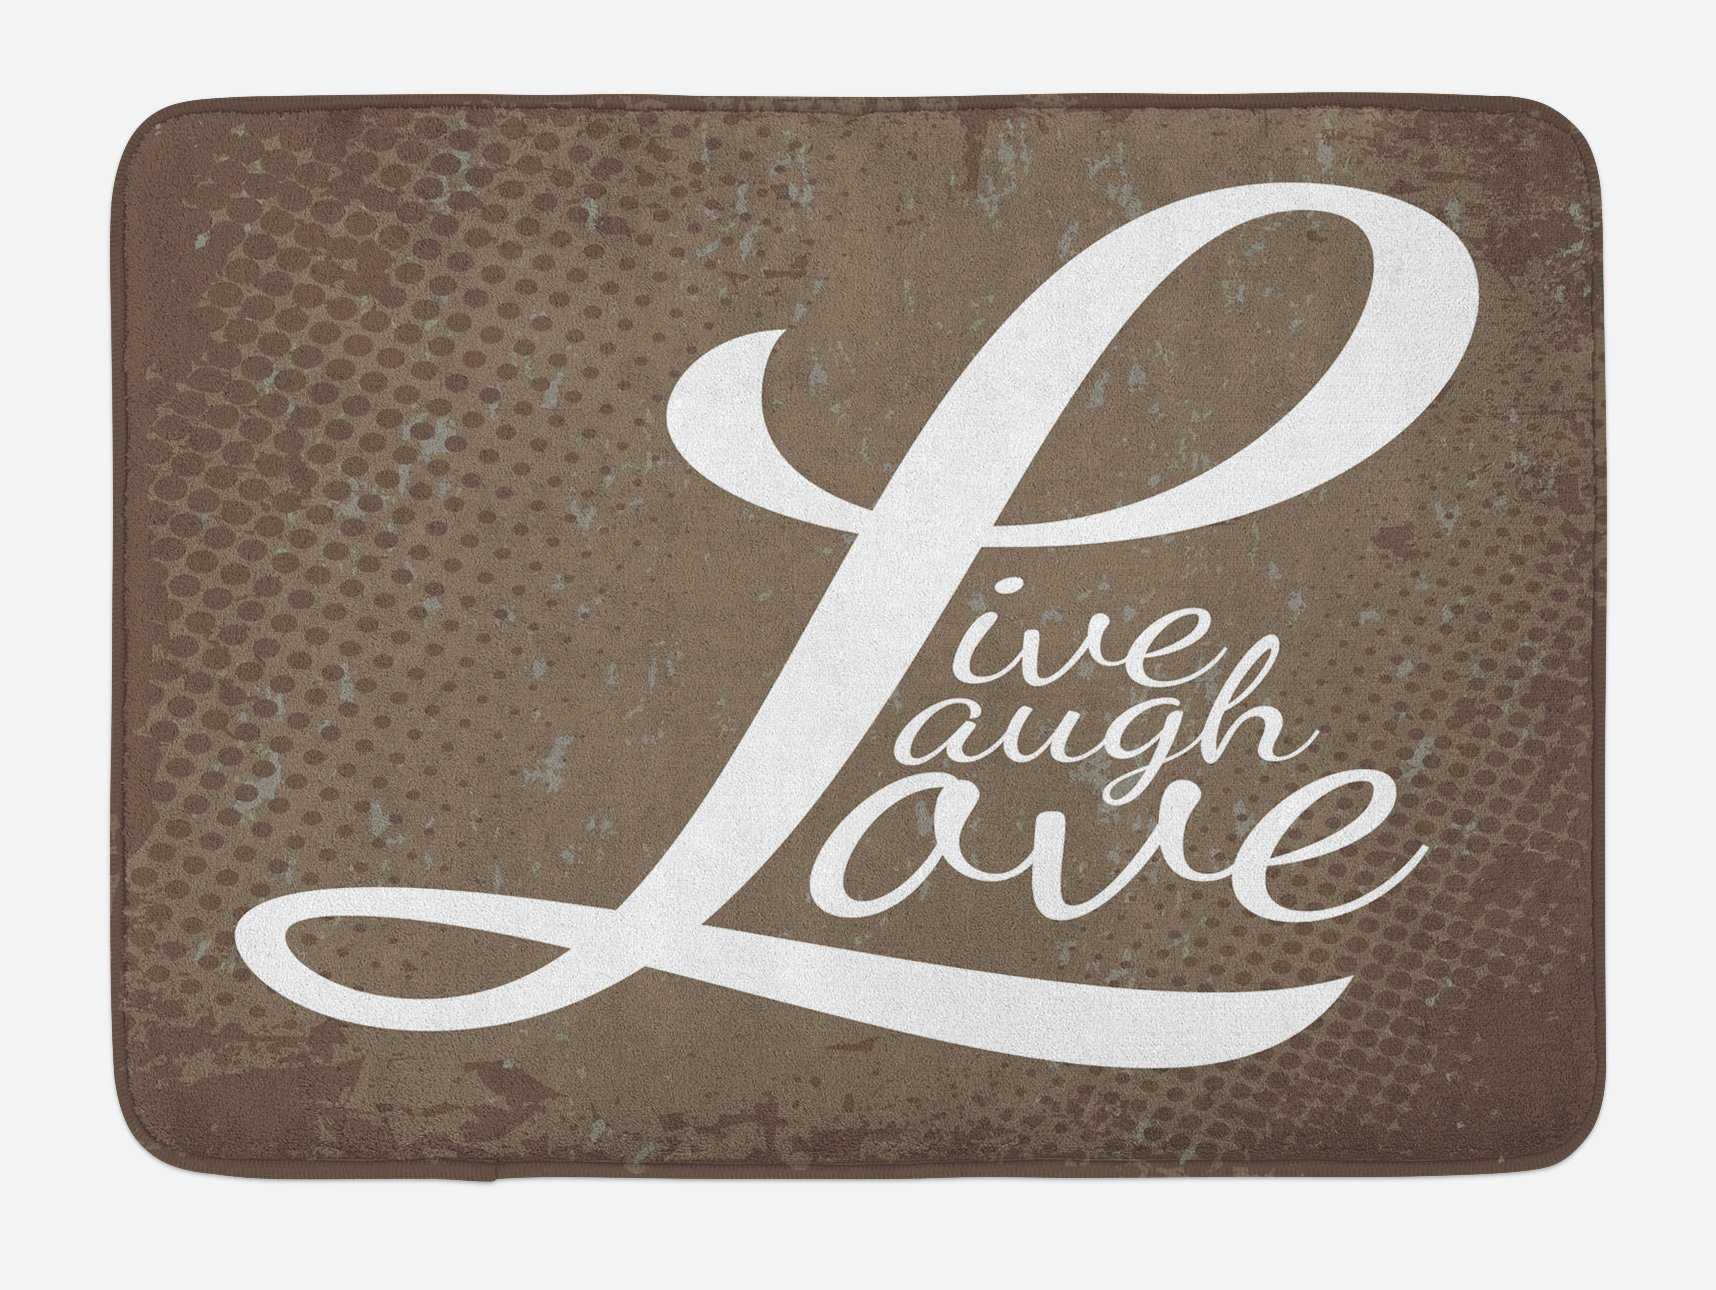 Ambesonne Live Laugh Love Bath Mat, Words Live Laugh Love on Halftone Worn out Style Background, Plush Bathroom Decor Mat with Non Slip Backing, 29.5 W X 17.5 W Inches, Brown White Pale Brown